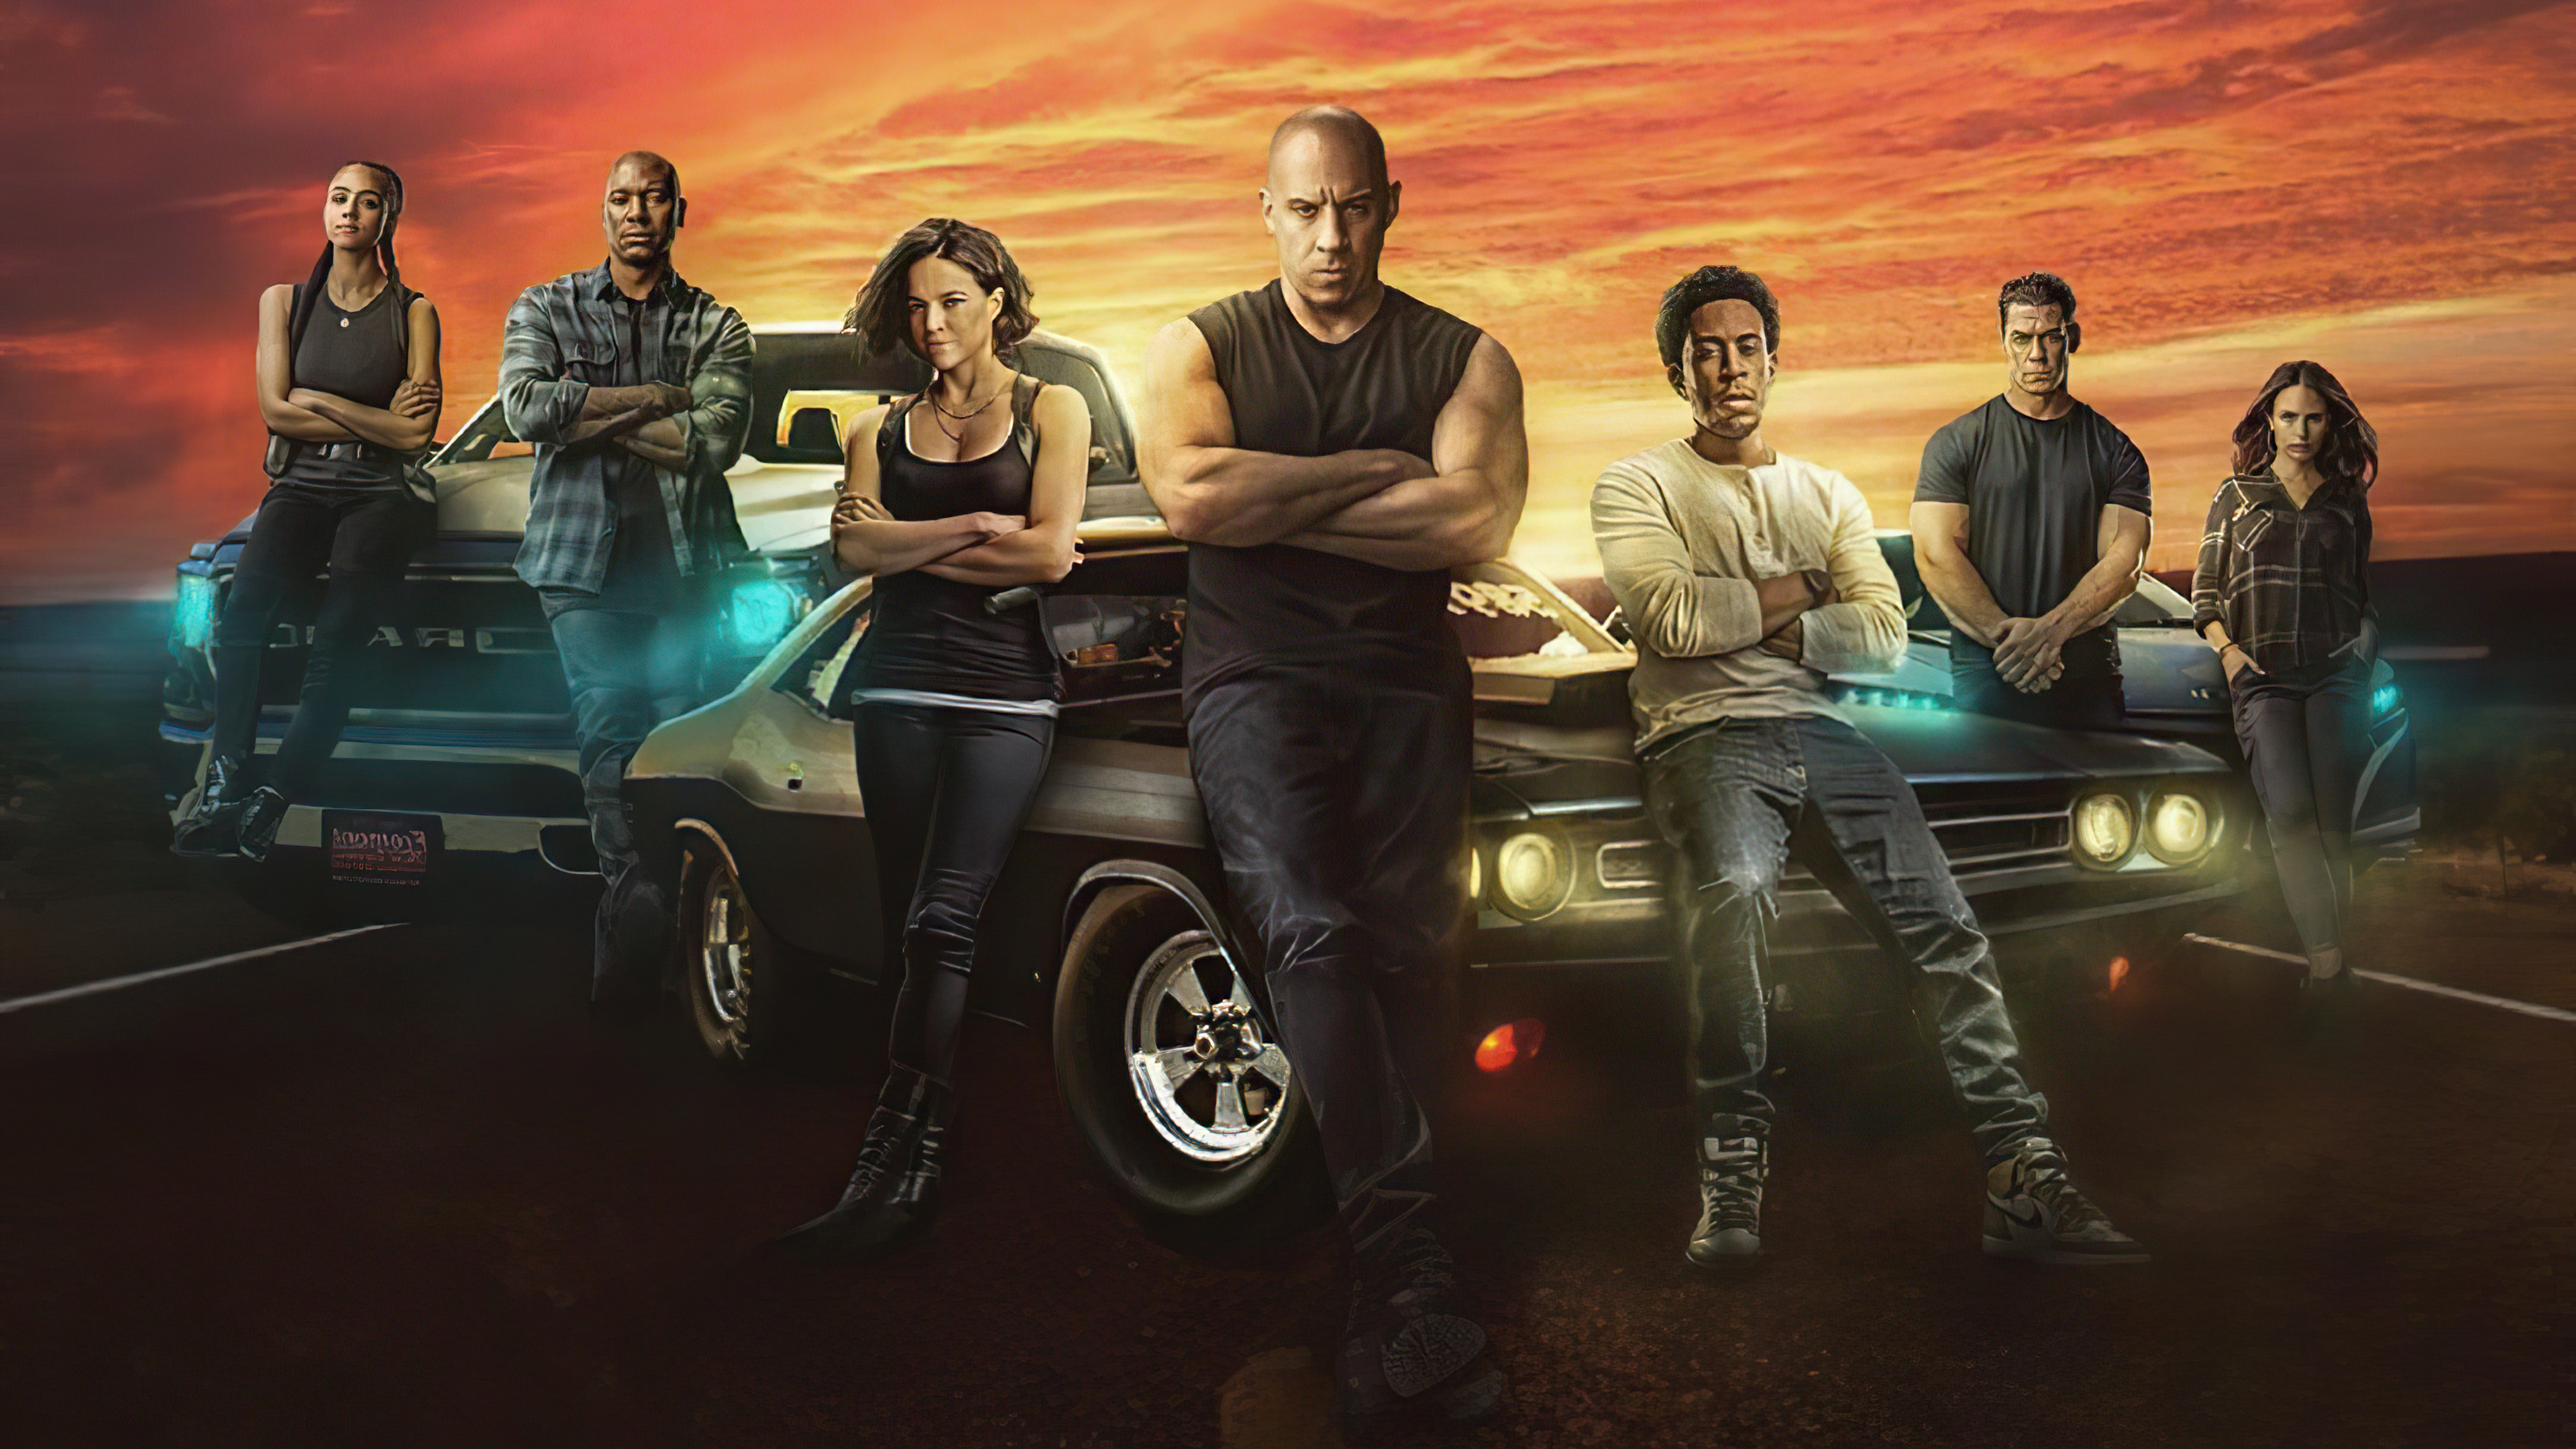 4K Fast And Furious 9 Wallpaper, HD Movies 4K Wallpapers ...